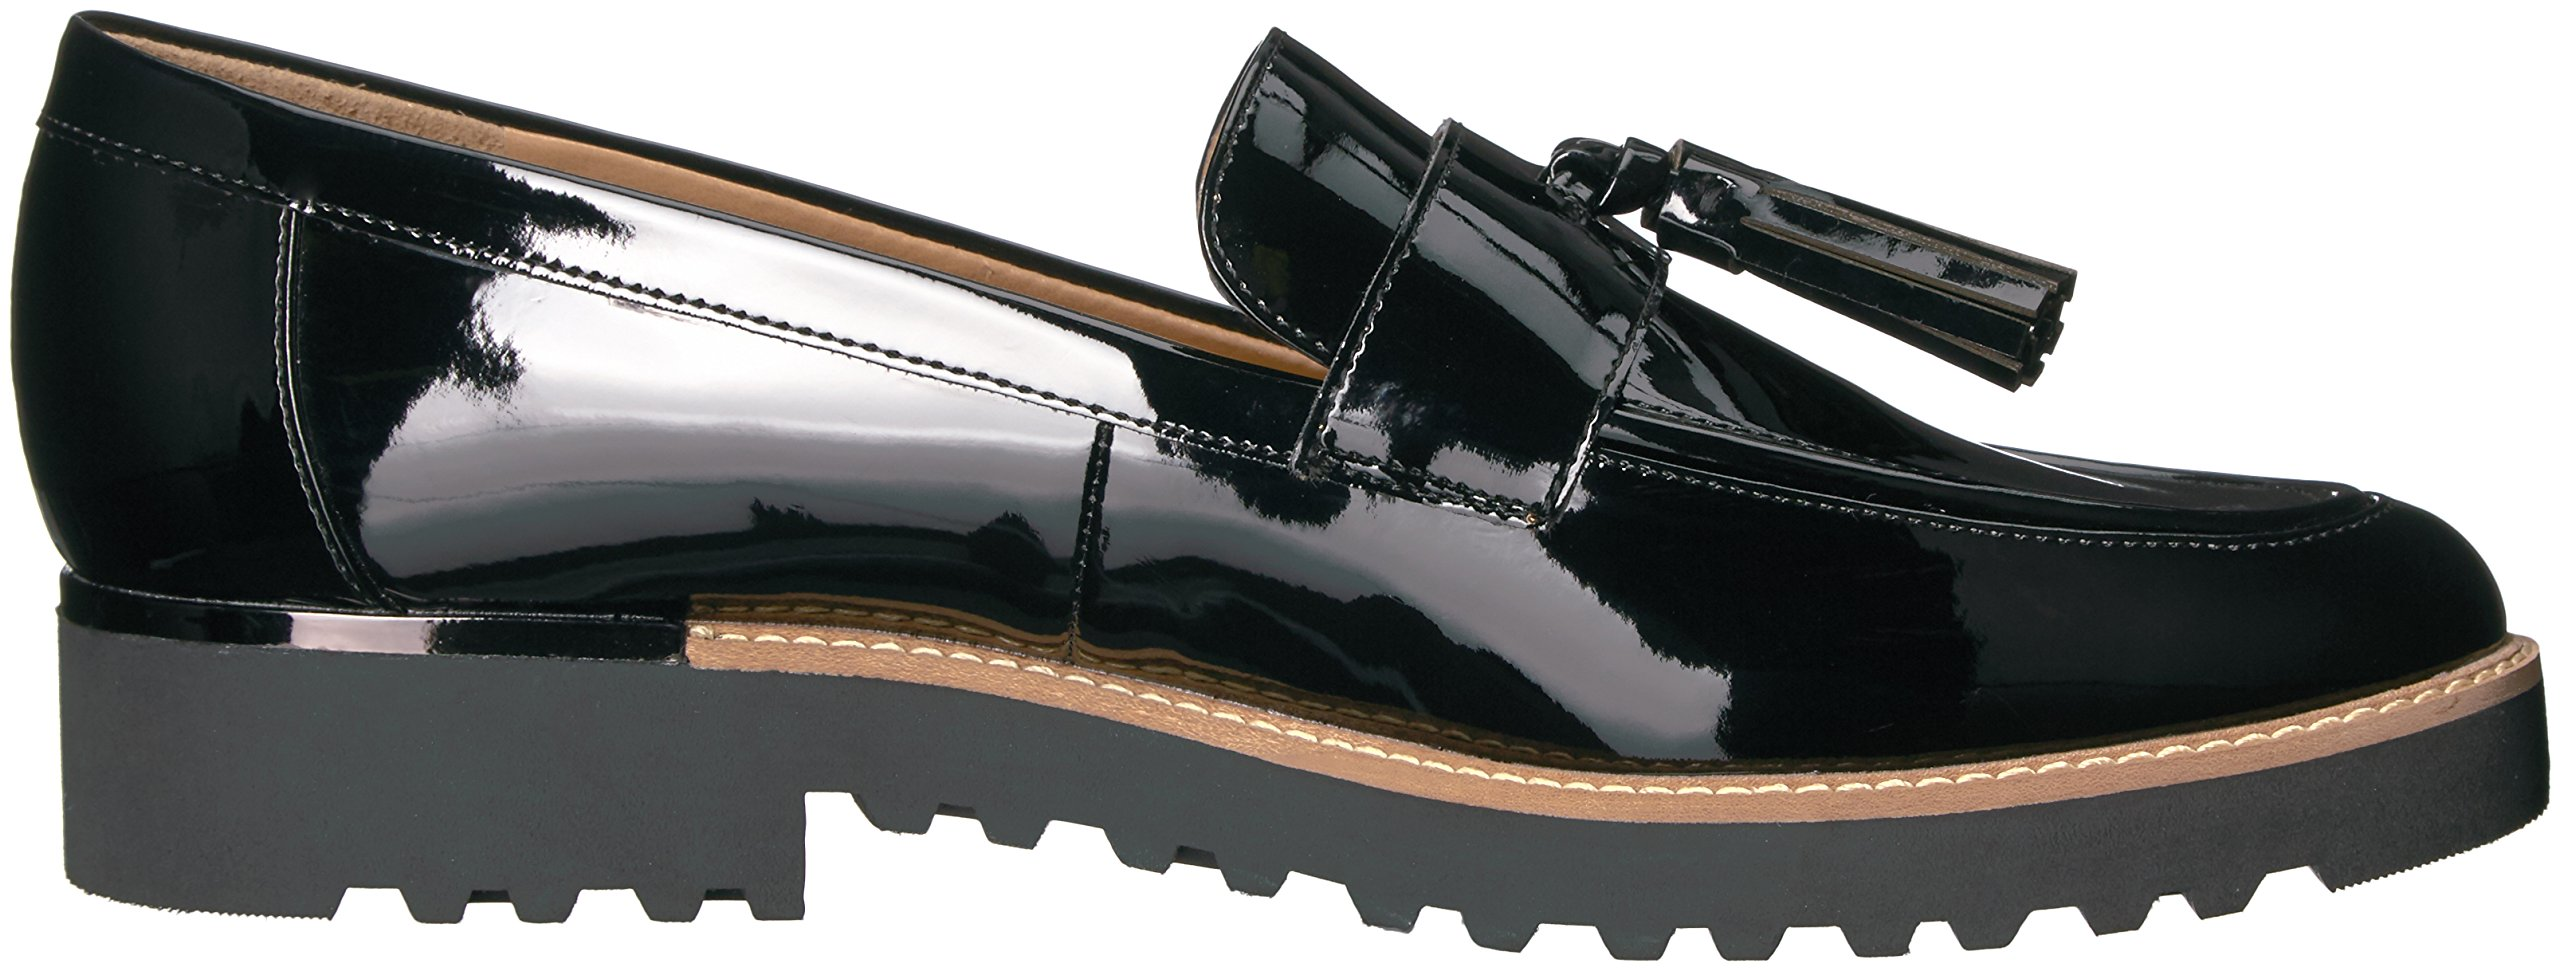 Franco Sarto Women's Carolynn Loafer Flat, Black, 9 M US by Franco Sarto (Image #7)